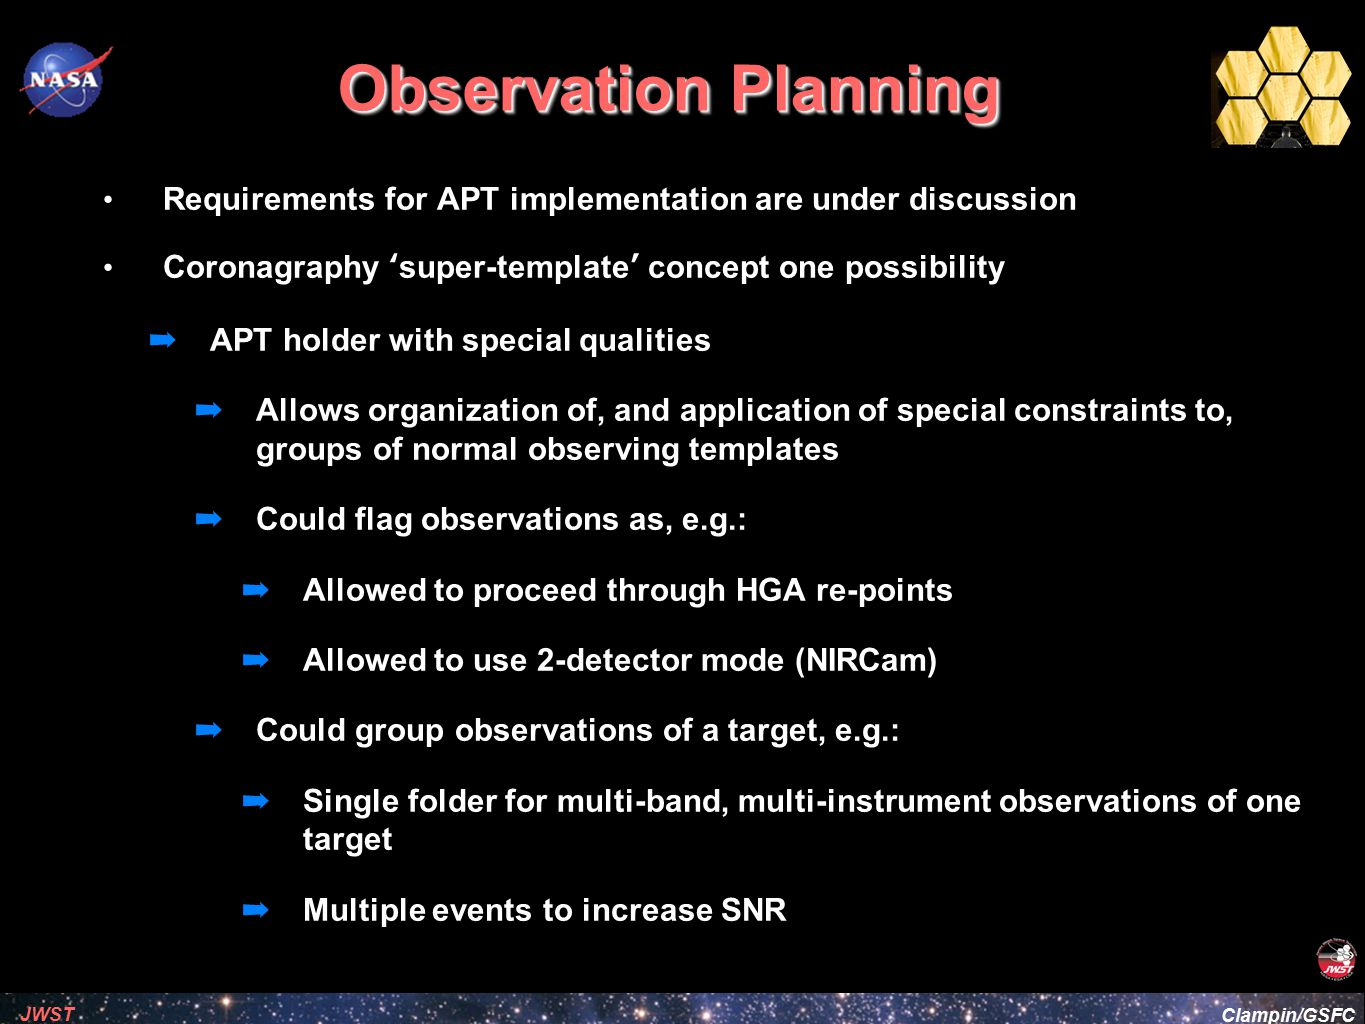 Observation Planning Requirements for APT implementation are under discussion. Coronagraphy 'super-template' concept one possibility.